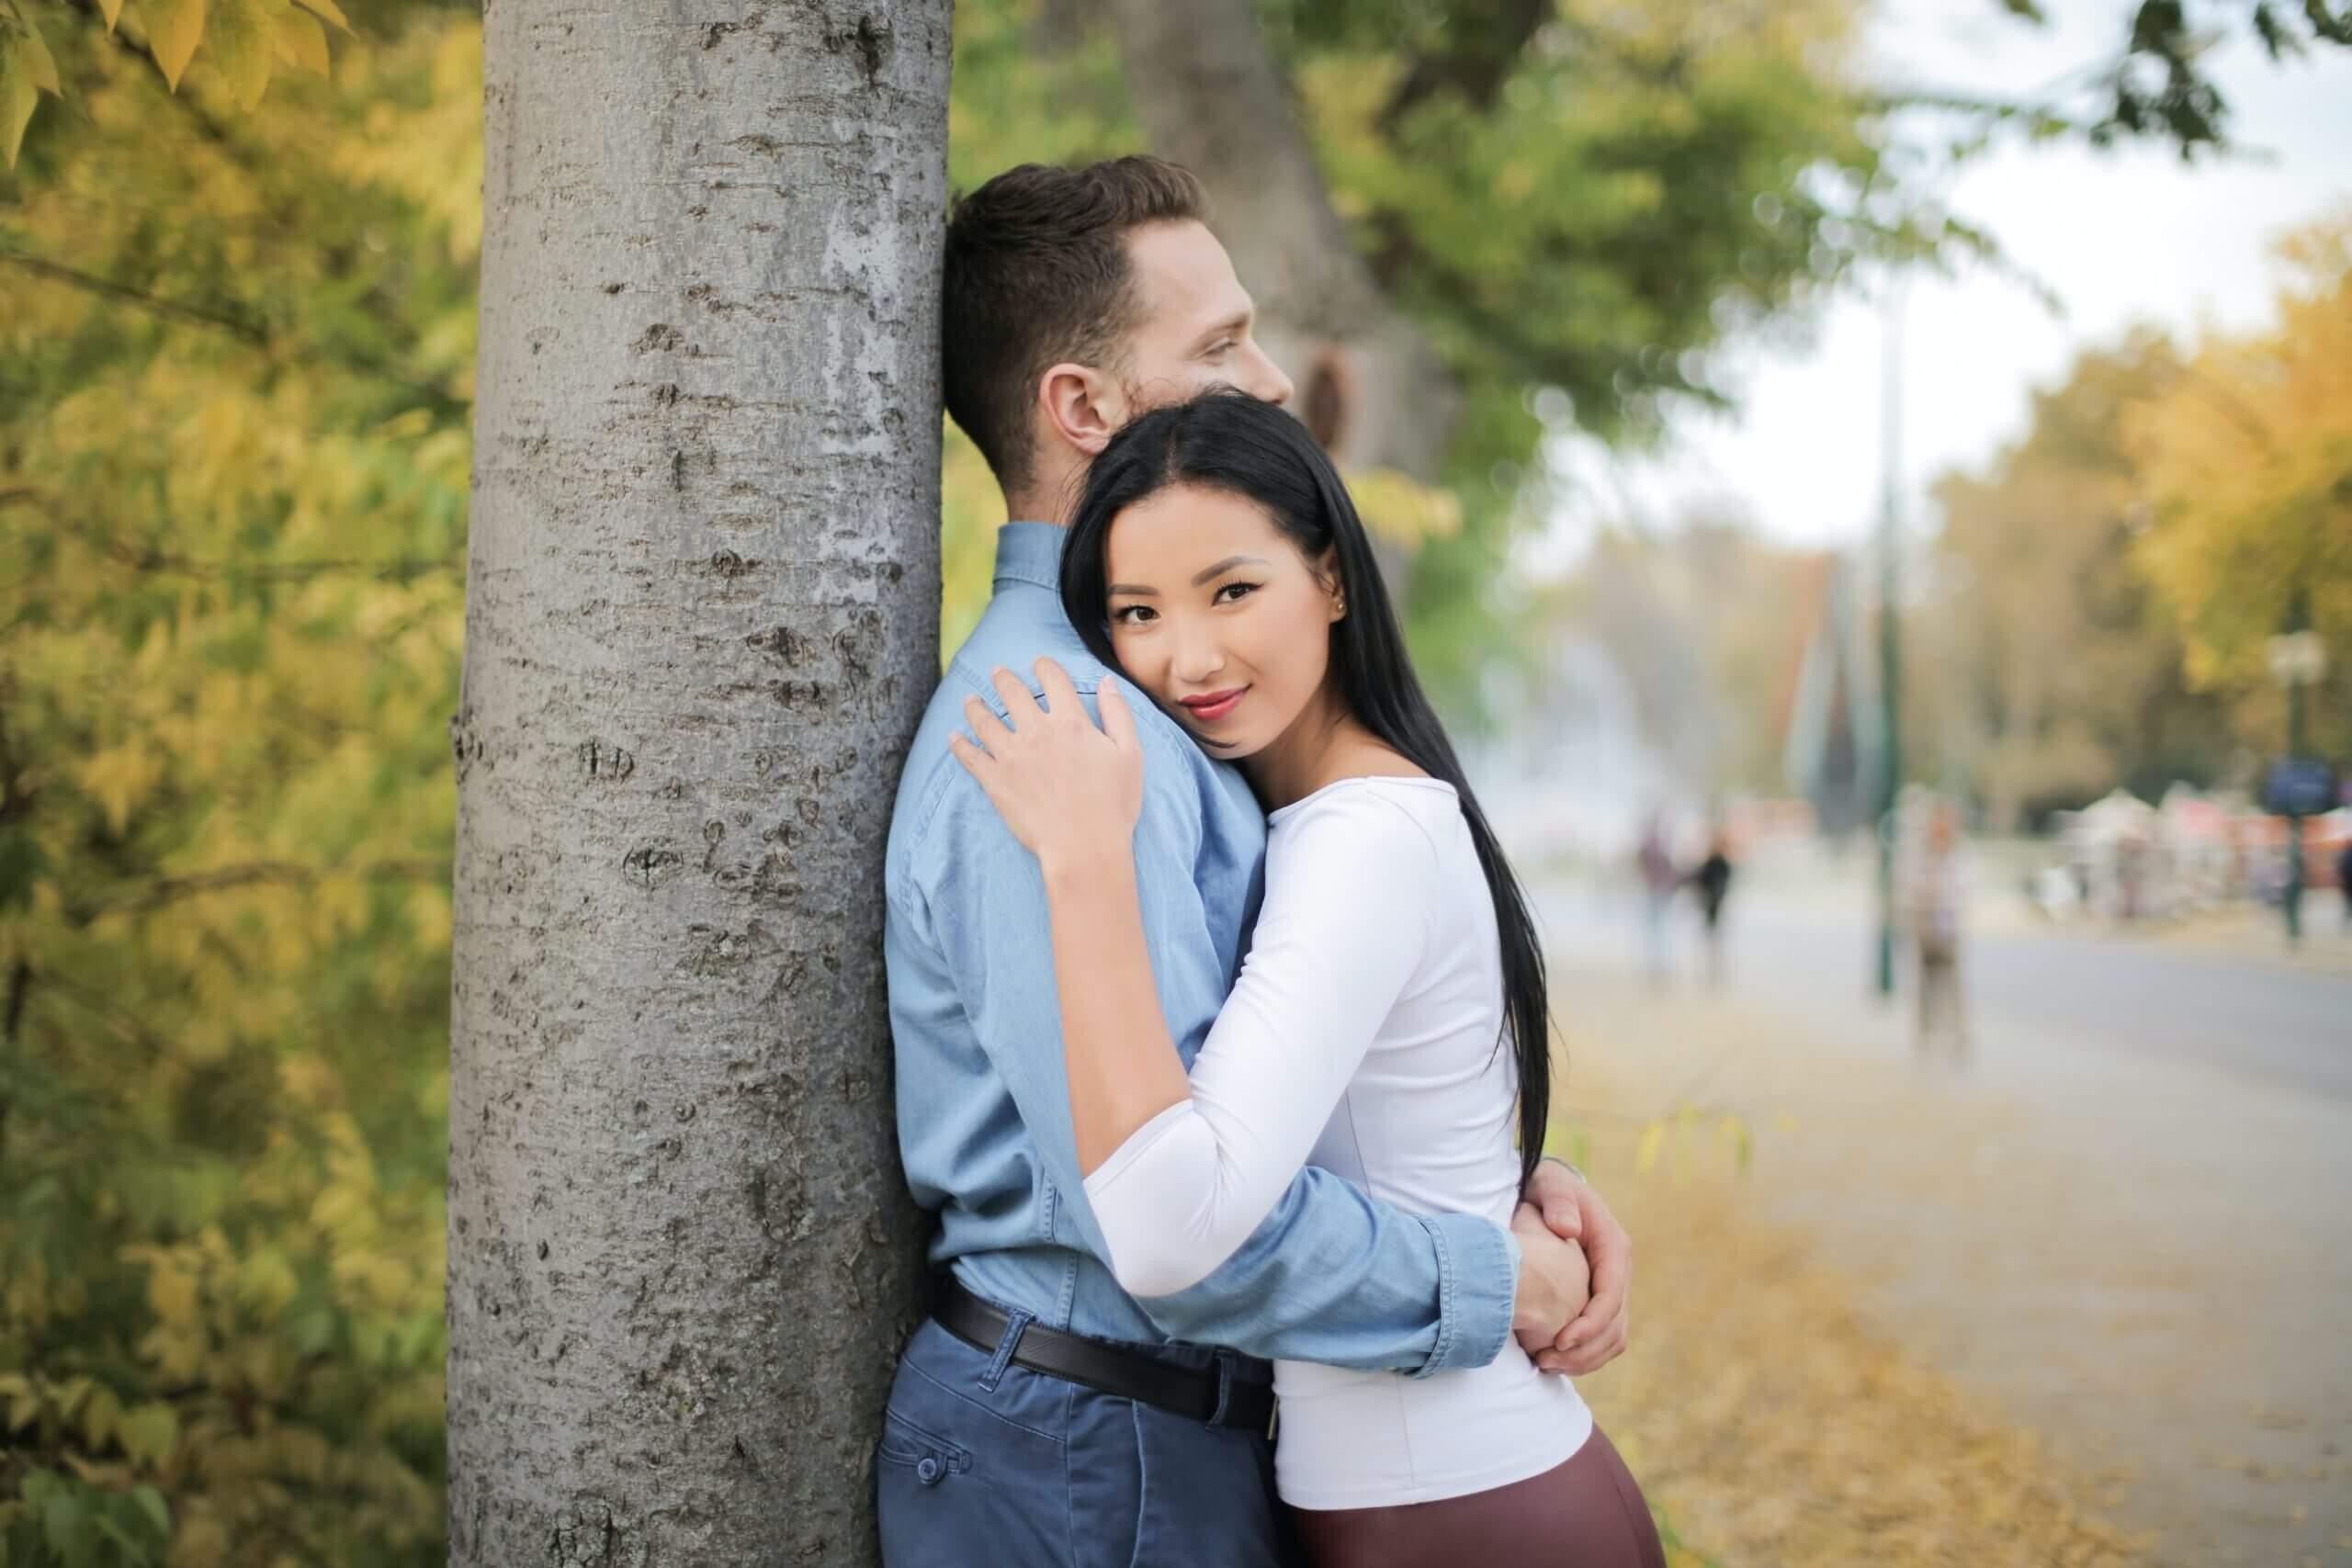 Couple hugging each other at the park